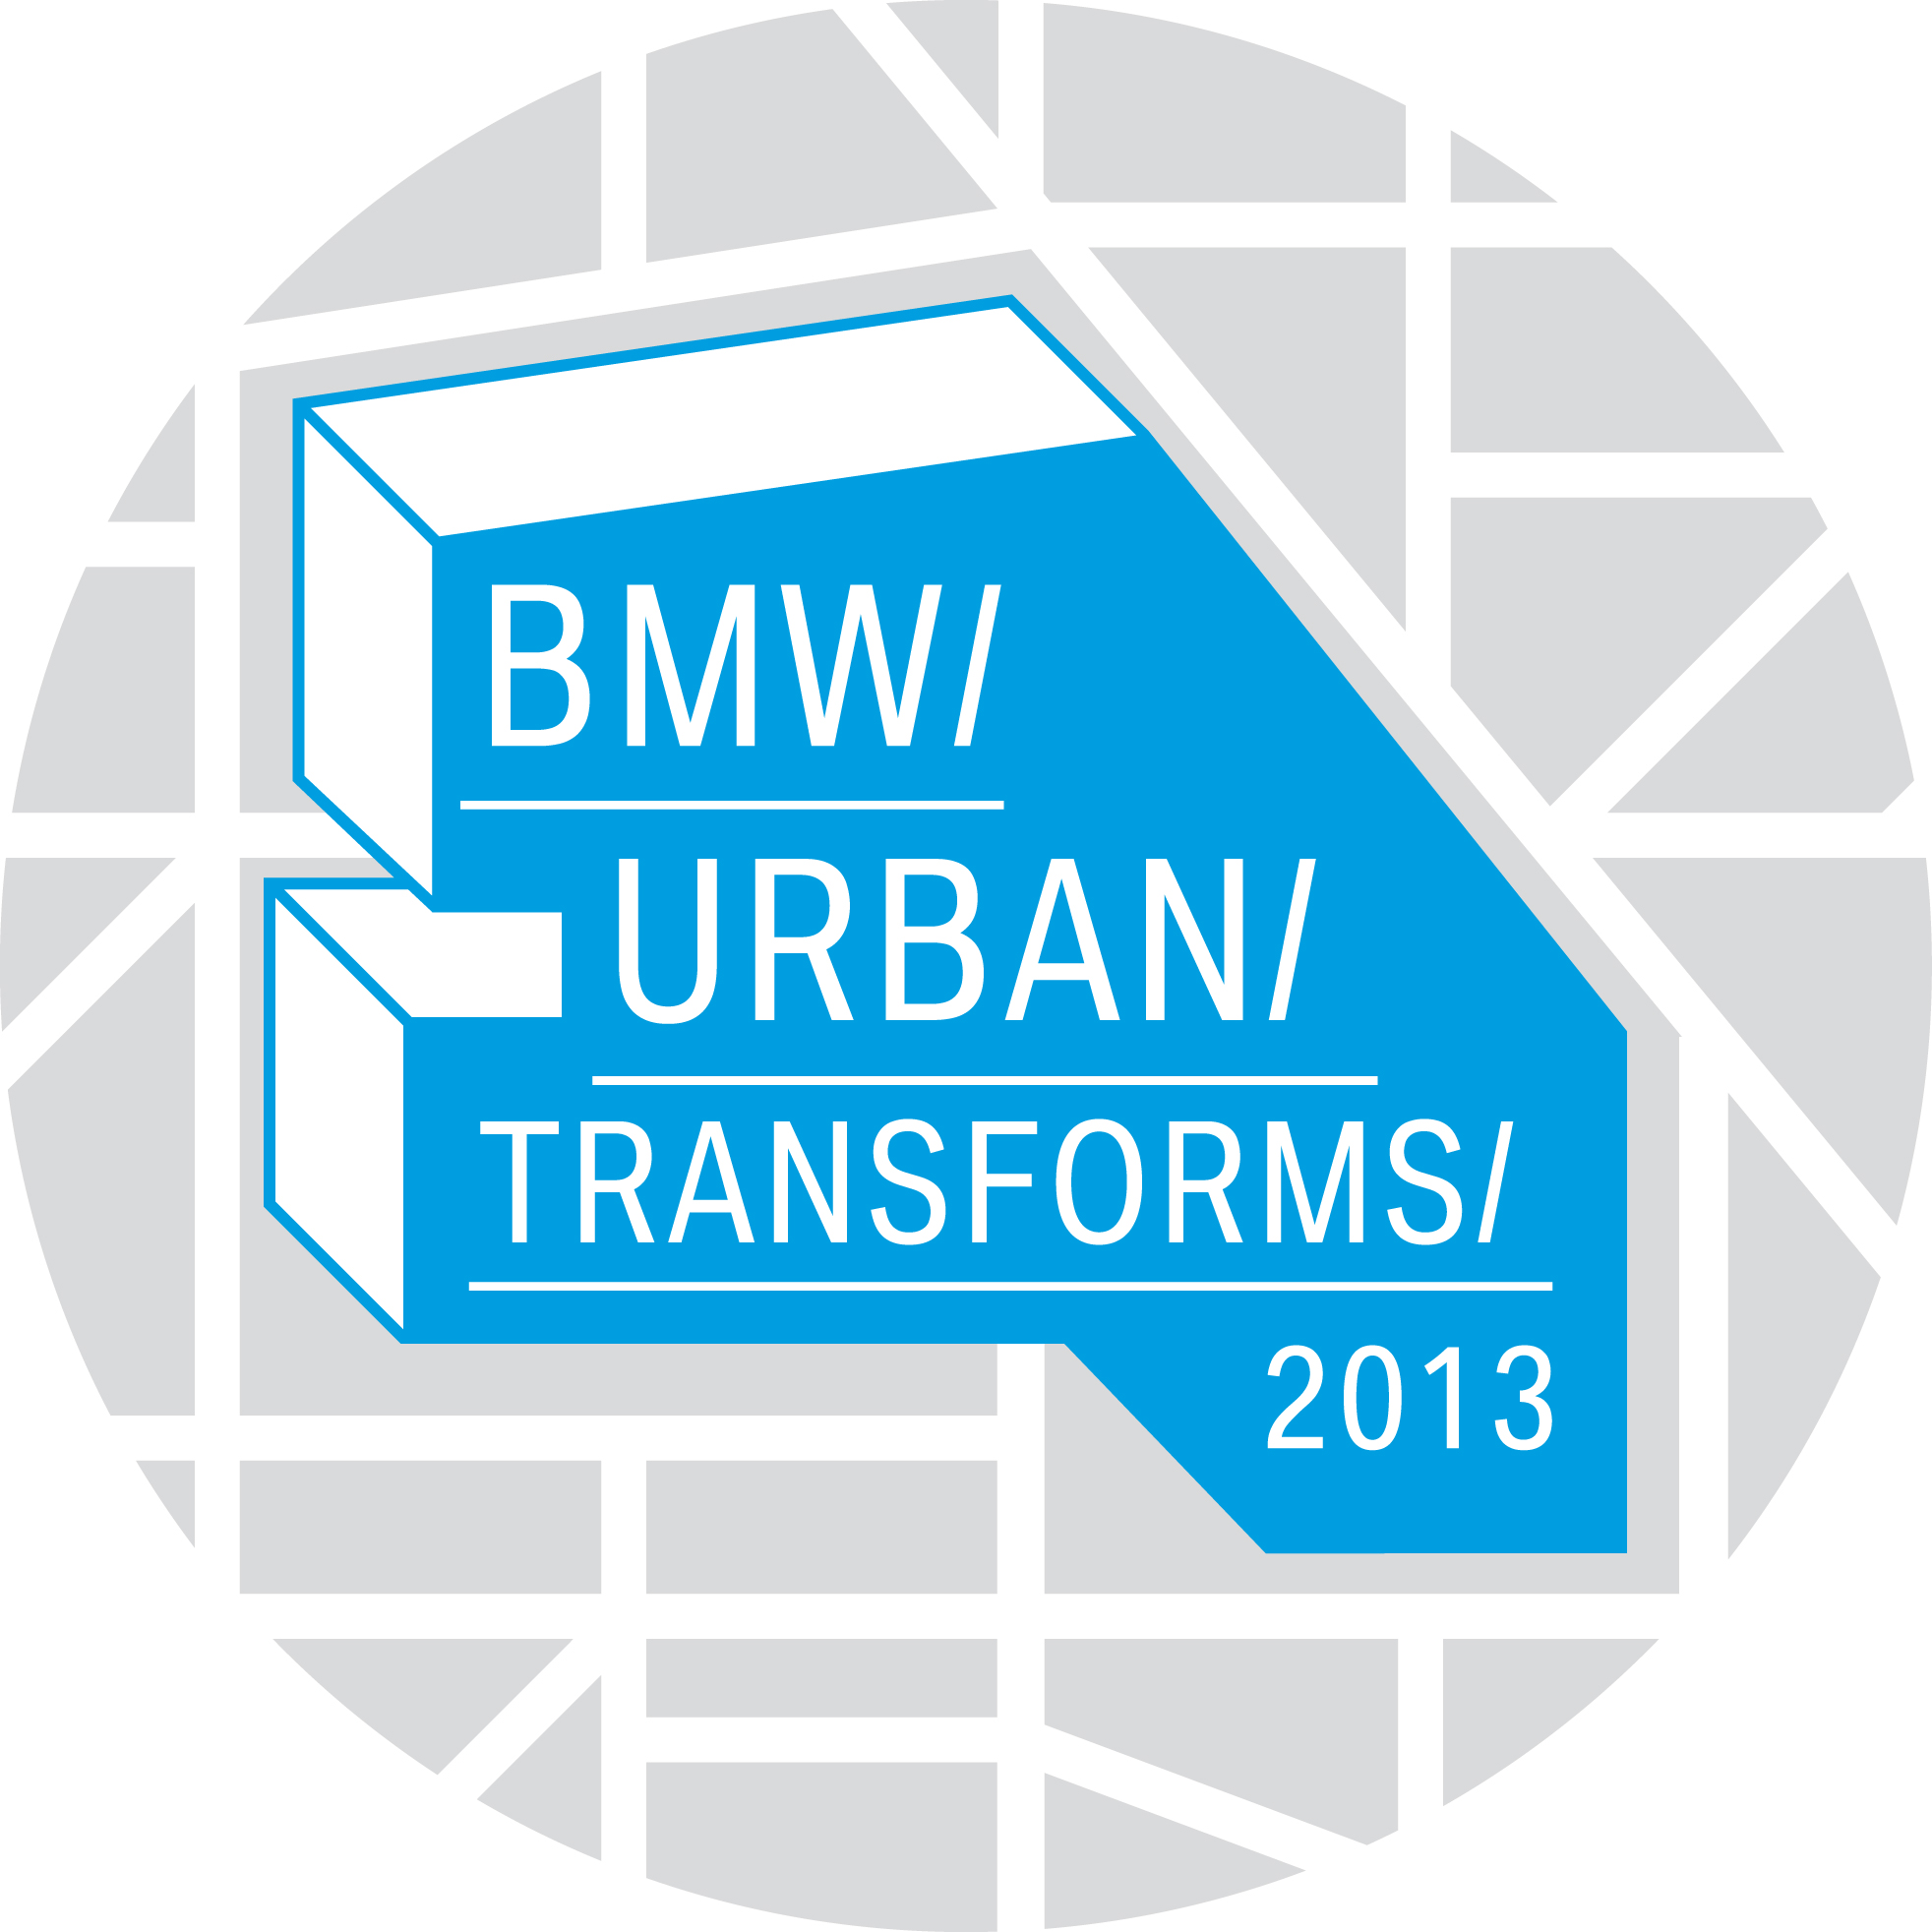 BMW/URBAN/TRANSFORMS/2013